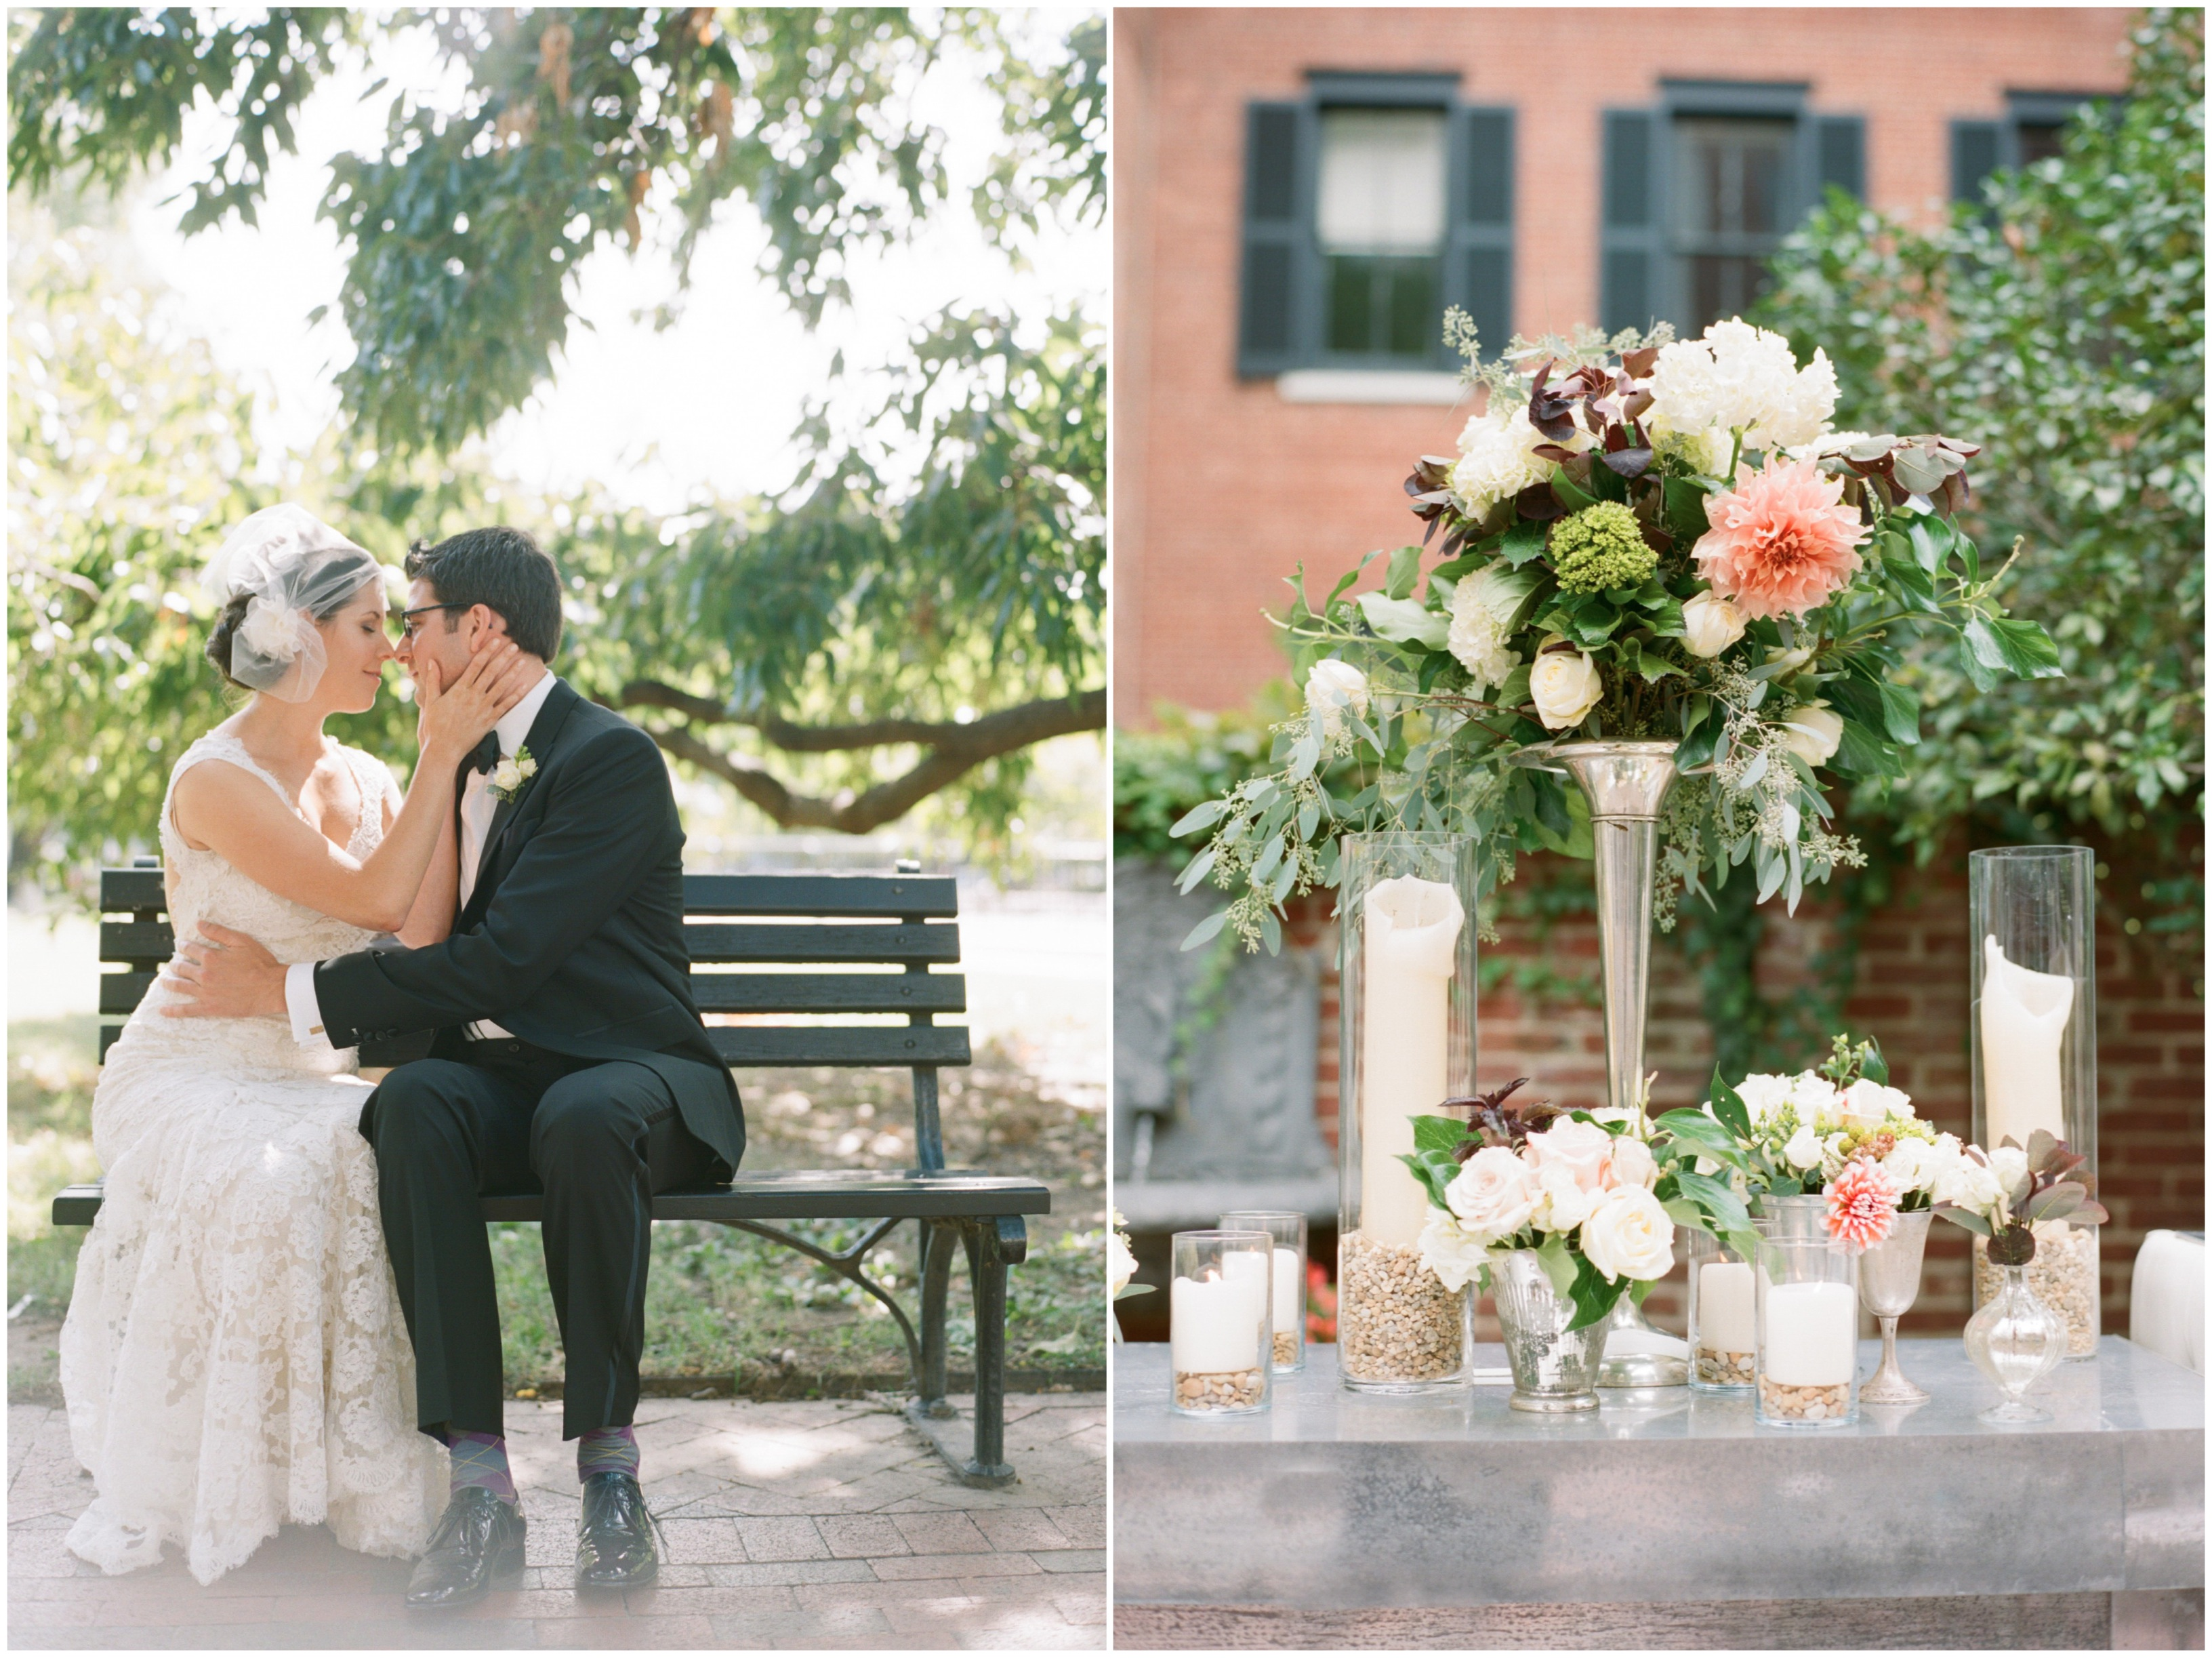 Decatur House Wedding in Washington, DC